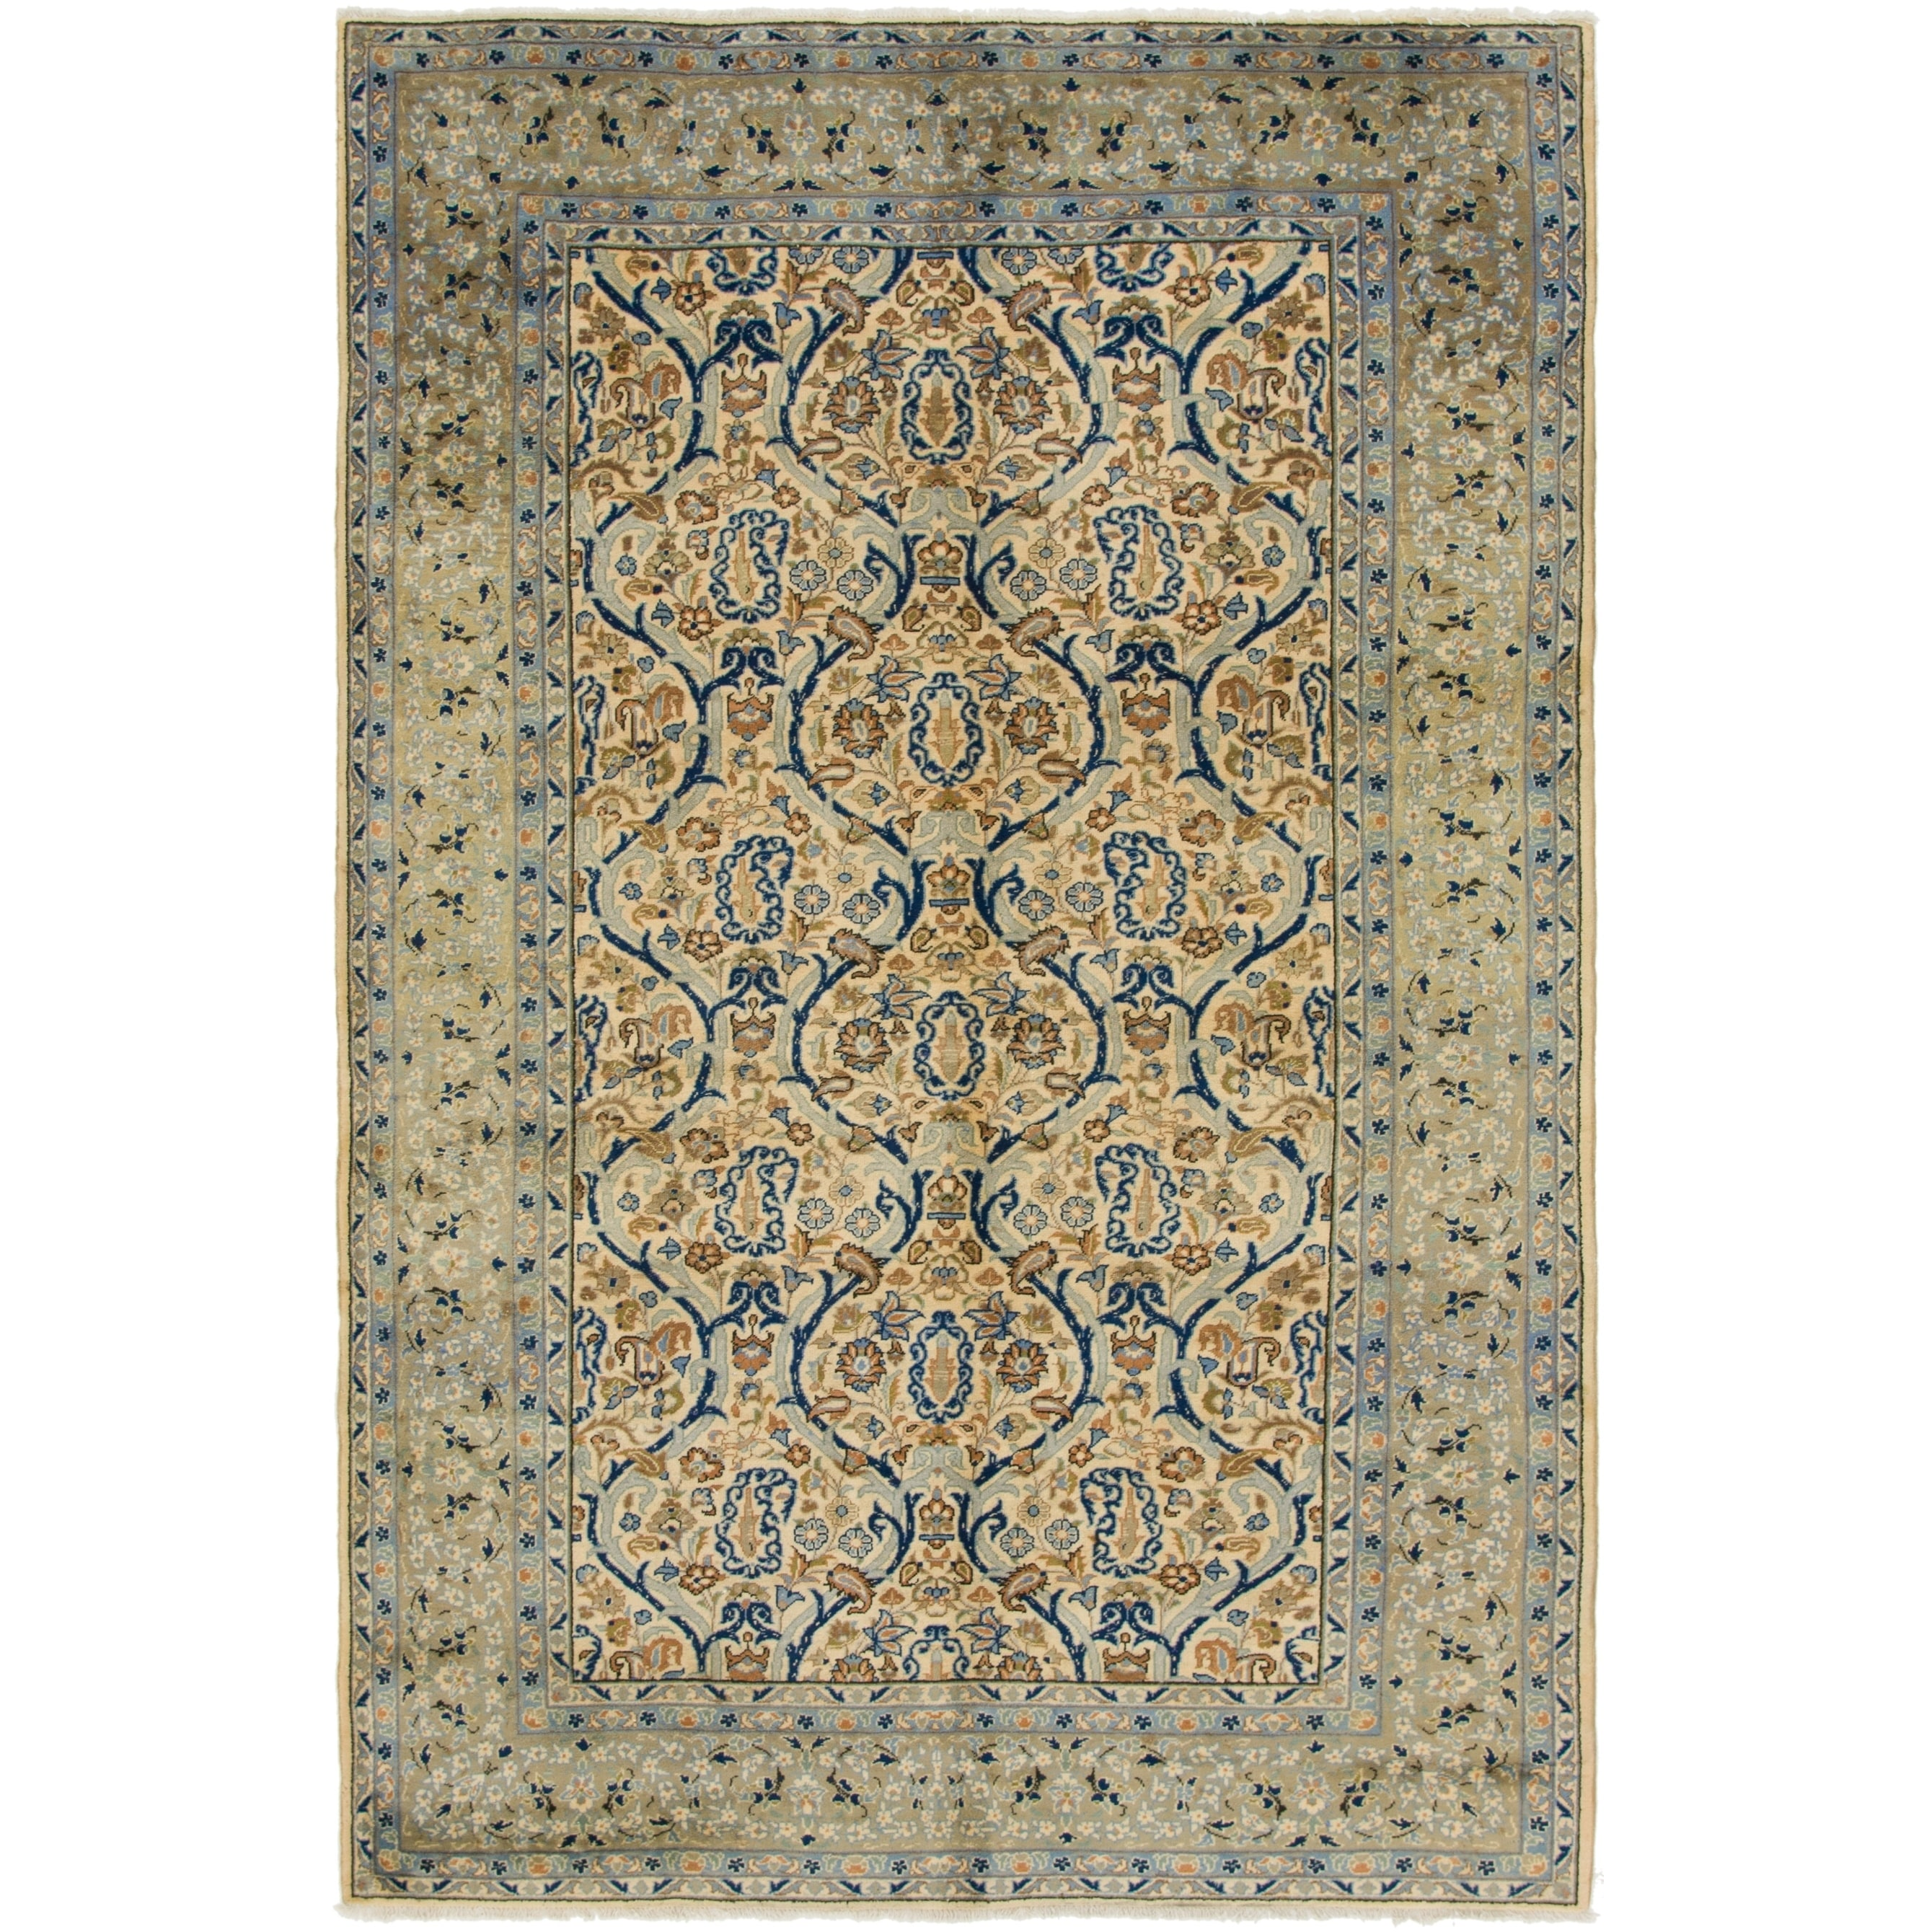 Hand Knotted Kashan Semi Antique Wool Area Rug - 6 6 x 10 (Ivory - 6 6 x 10)